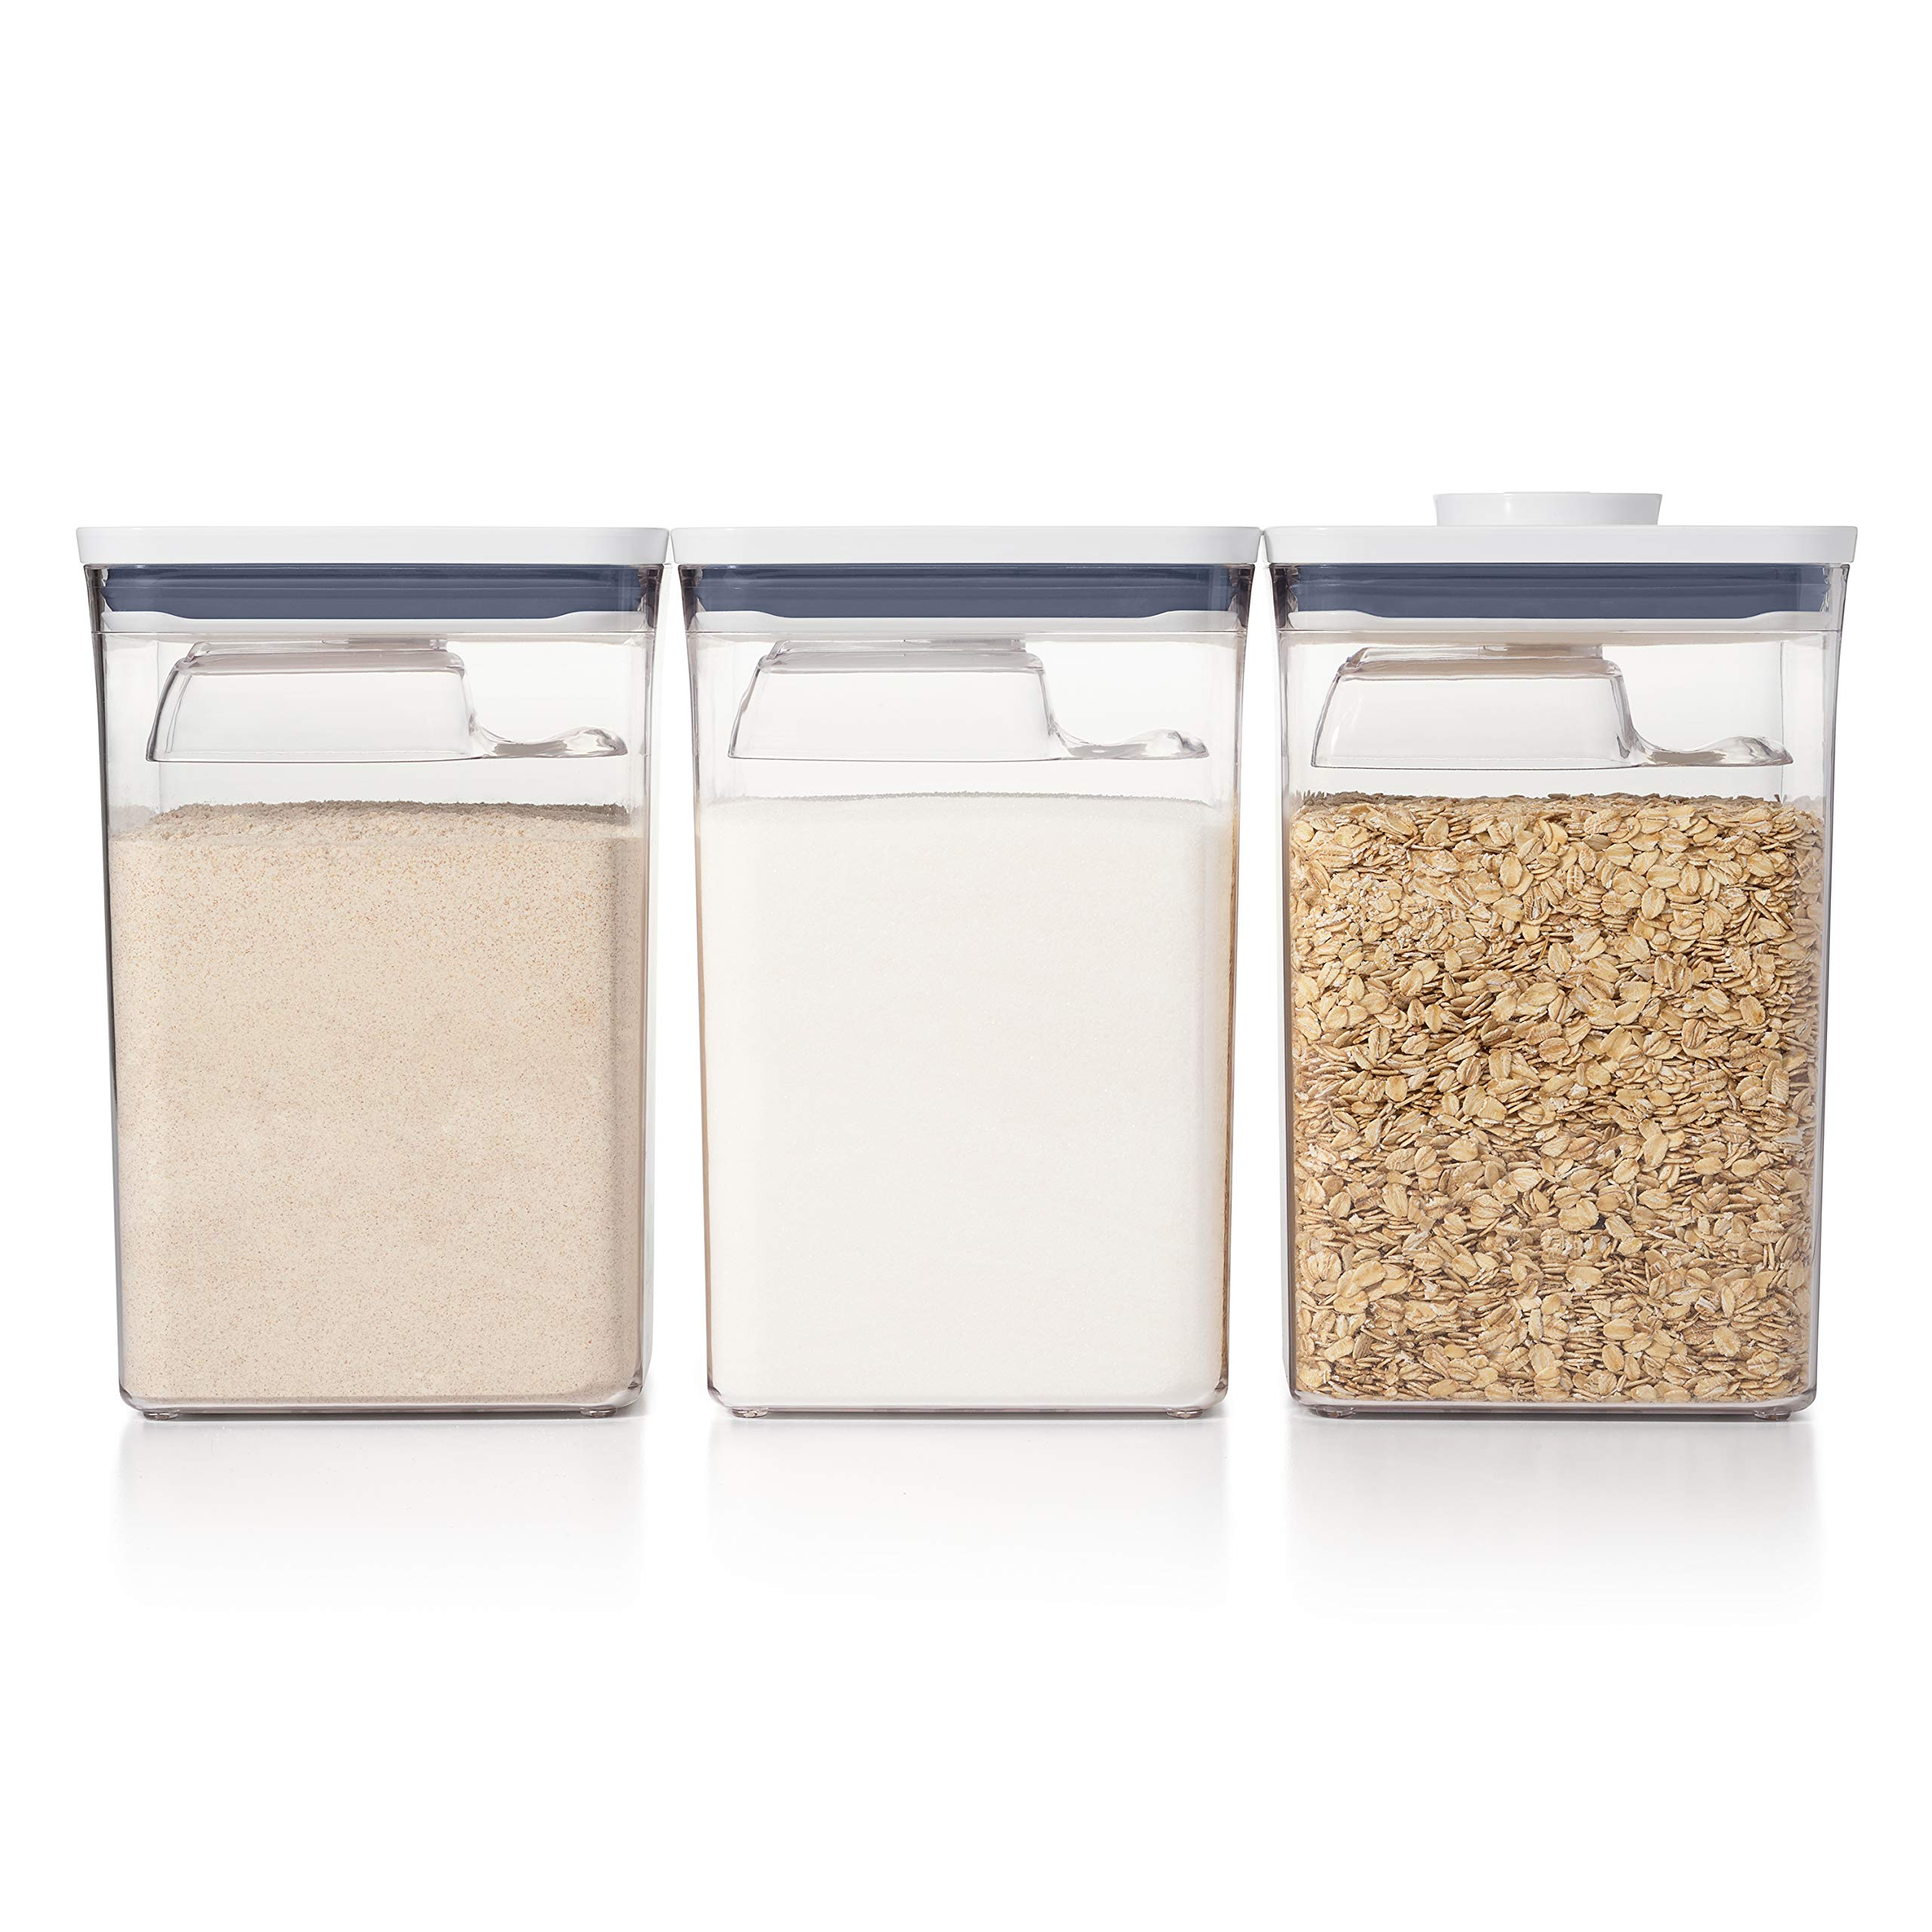 NEW OXO Good Grips 6-Piece POP Container Bulk Set by OXO